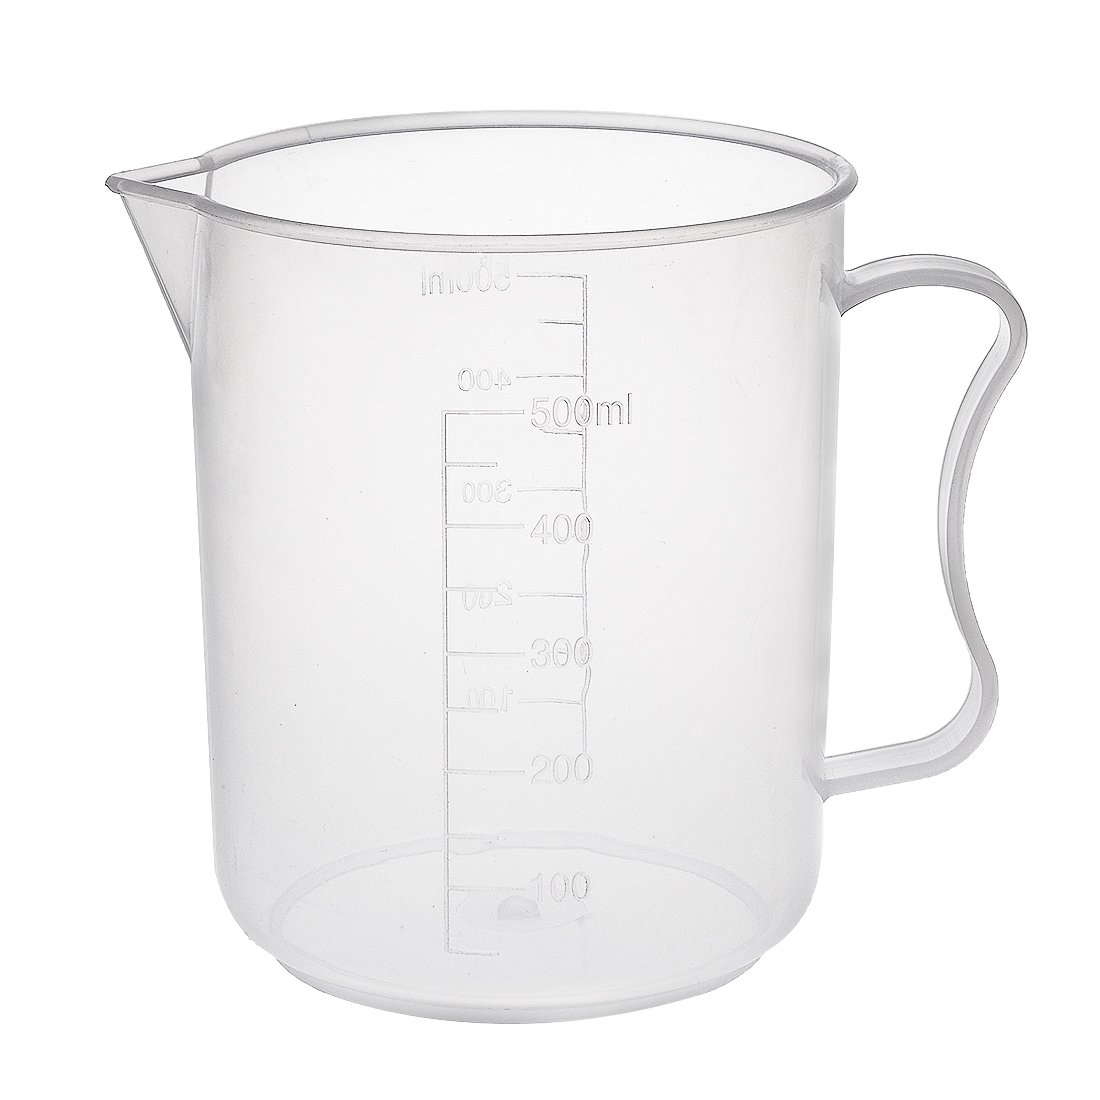 sourcingmap Laboratory Clear White PP 500mL Measuring Cup Handled Beaker a18031400ux0084